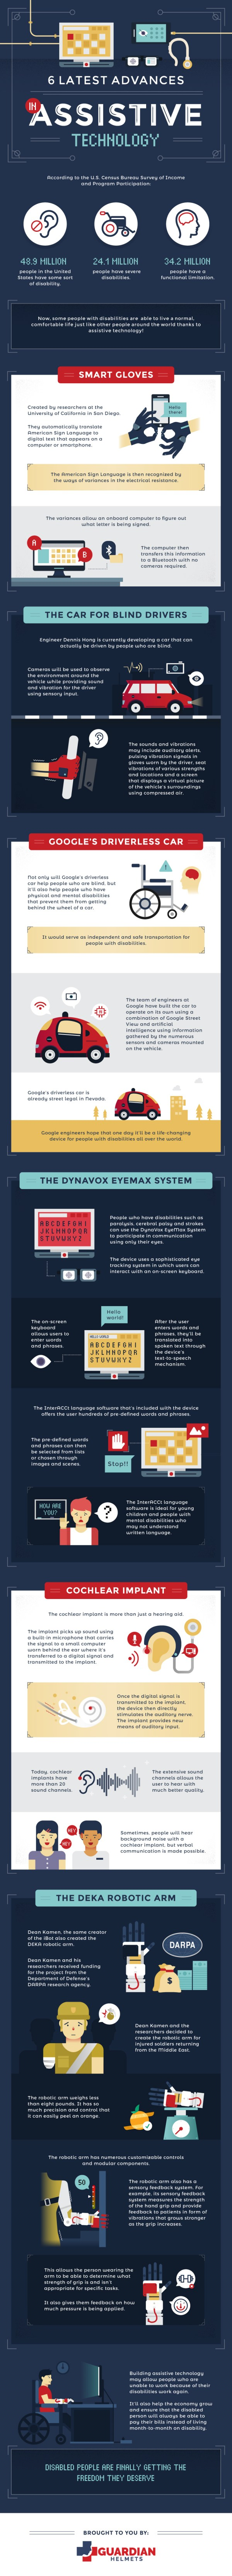 6 Latest Advances In Assistive Technology Infographic